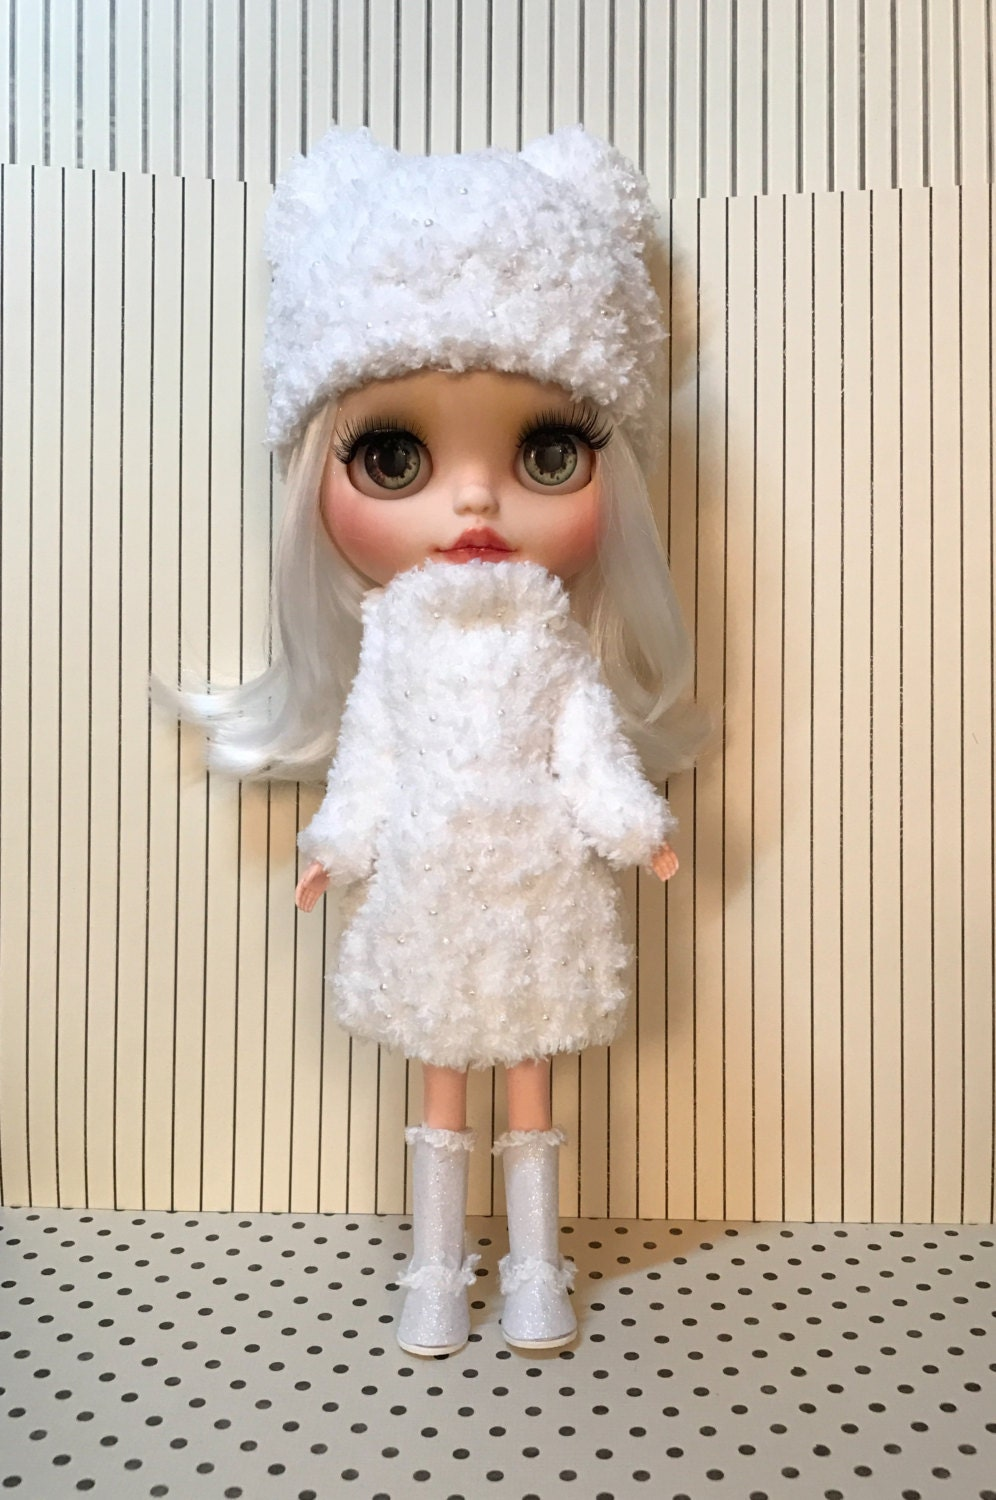 Blythe doll  outfit  hand knitted in super soft teddy yarn dress and matching Pom Pom  hat with tiny pearl beads hand sewn on